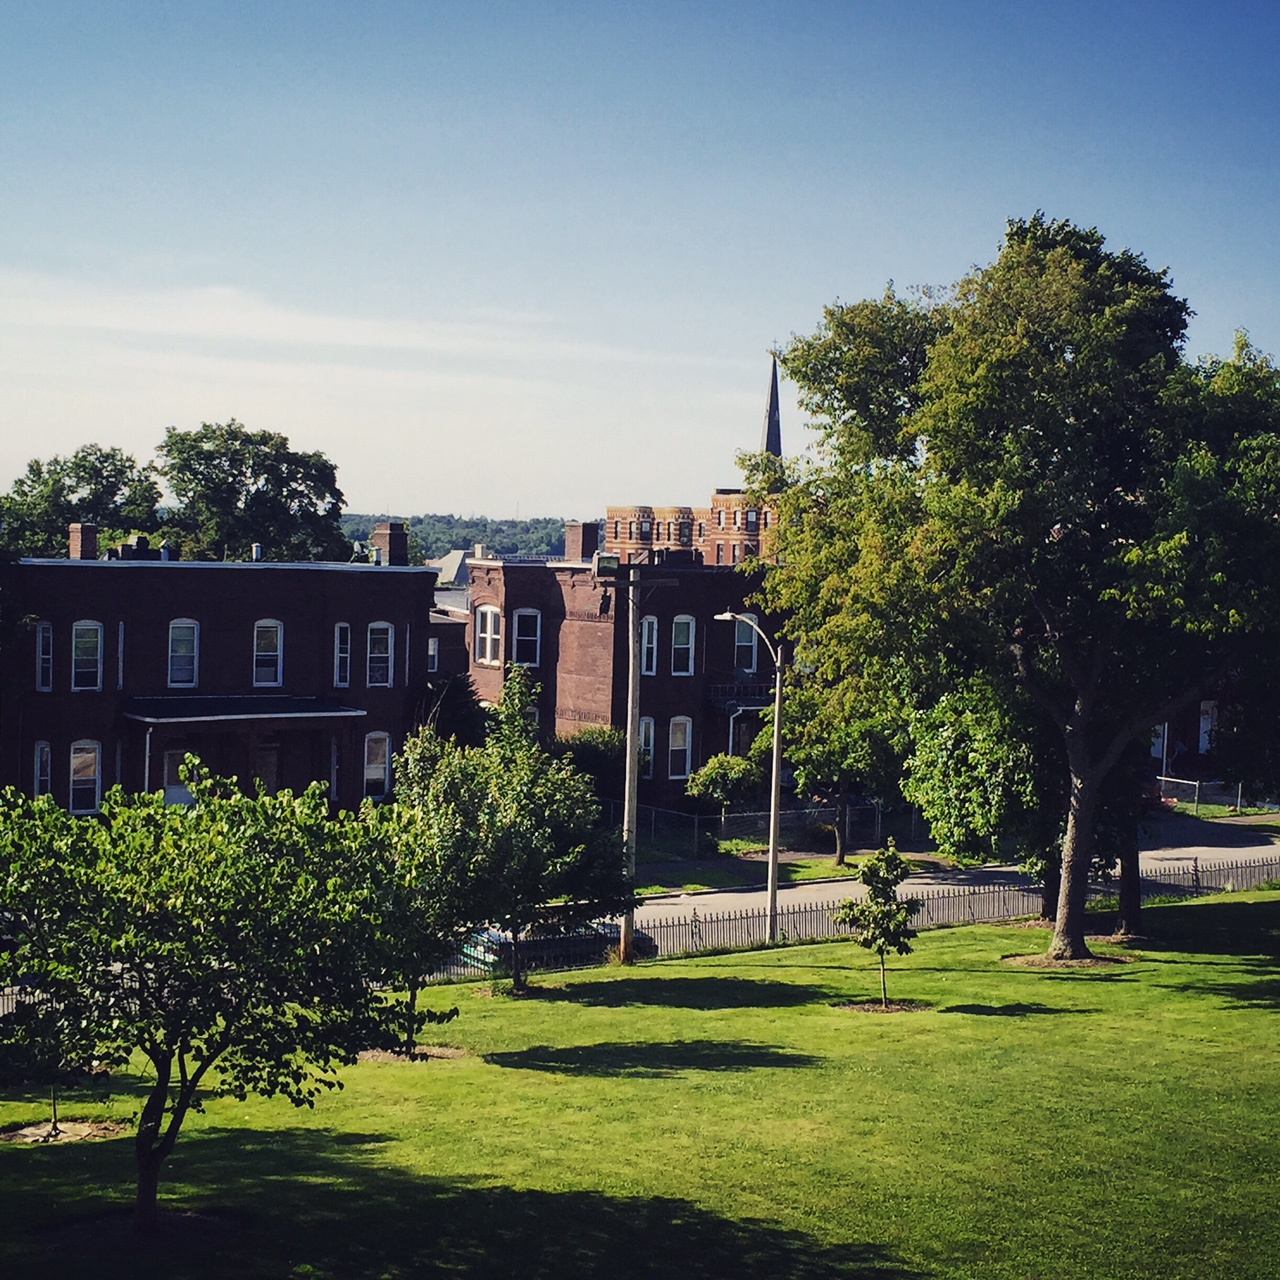 agreen lawn, leading up to green leaf trees, a black wrought iron fence, with red brick buildings in the background